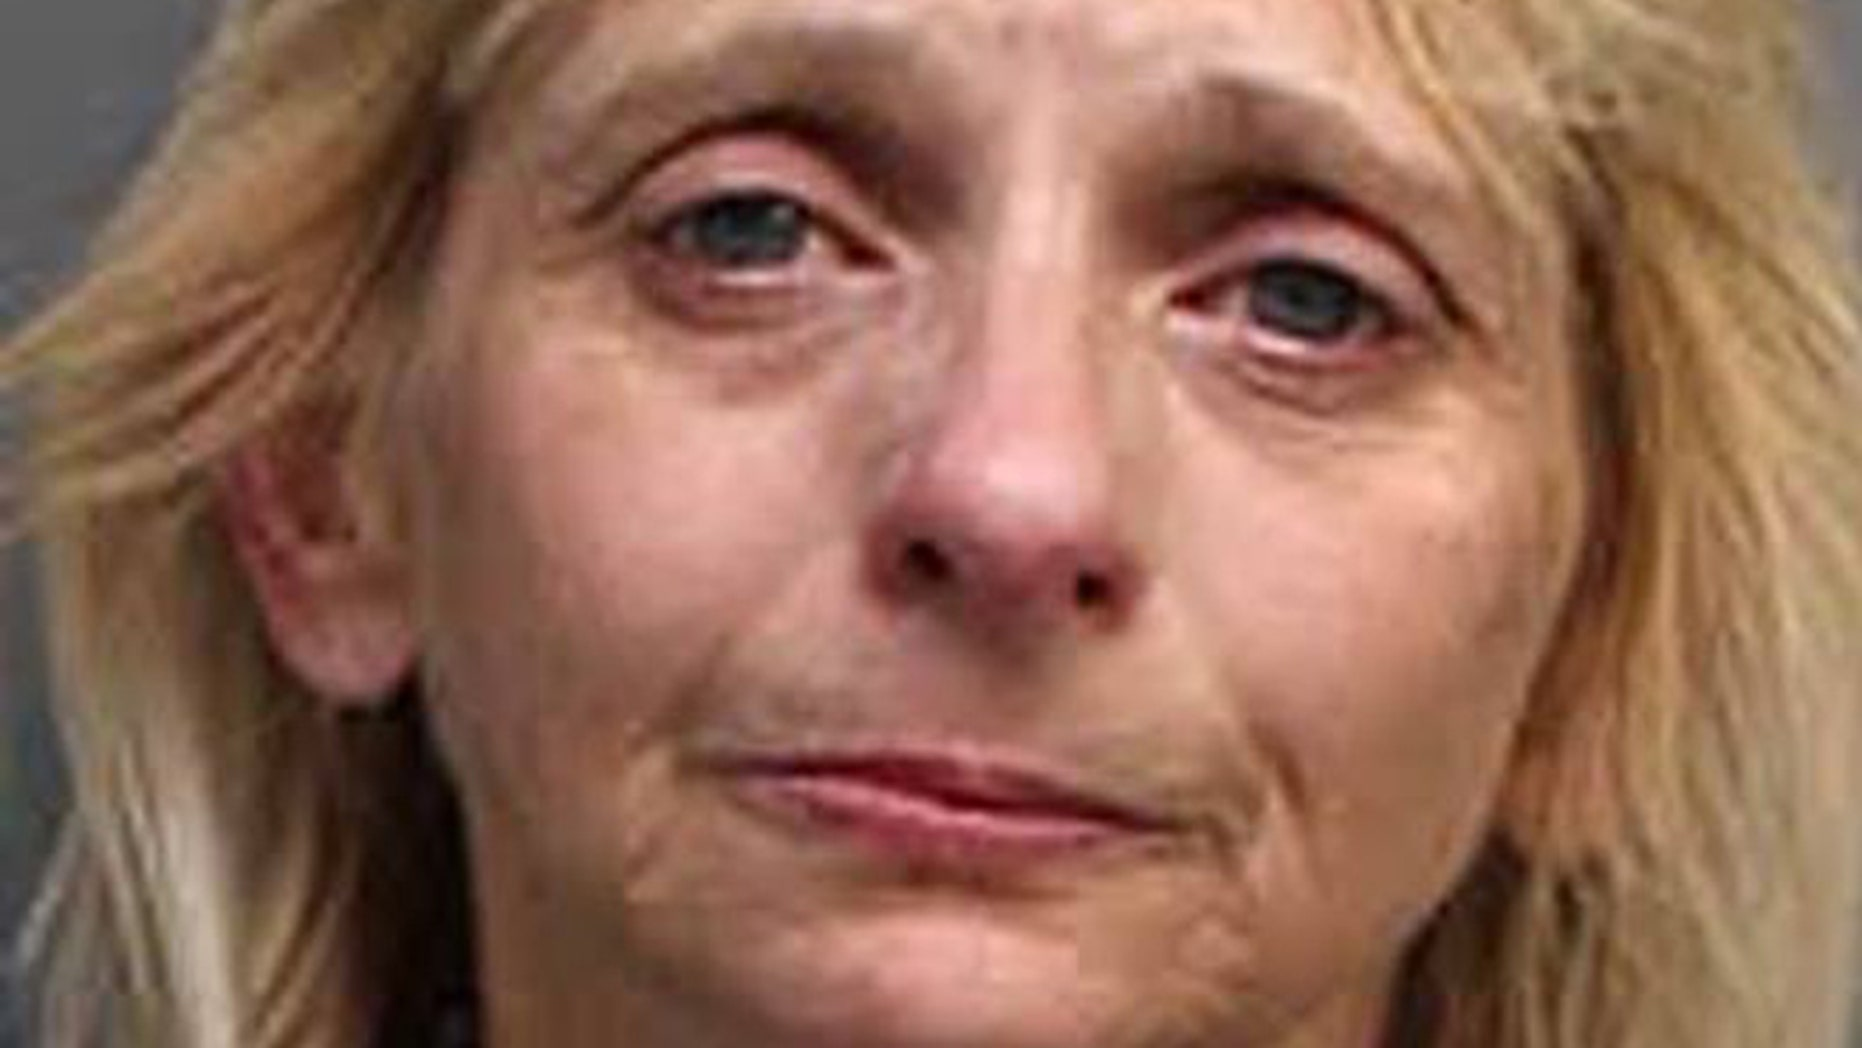 Cynthia Watson made herself a methamphetamine-laced cup of tea and left it unattended on a counter, where her 2-year-old granddaughter found the drink and took a sip.